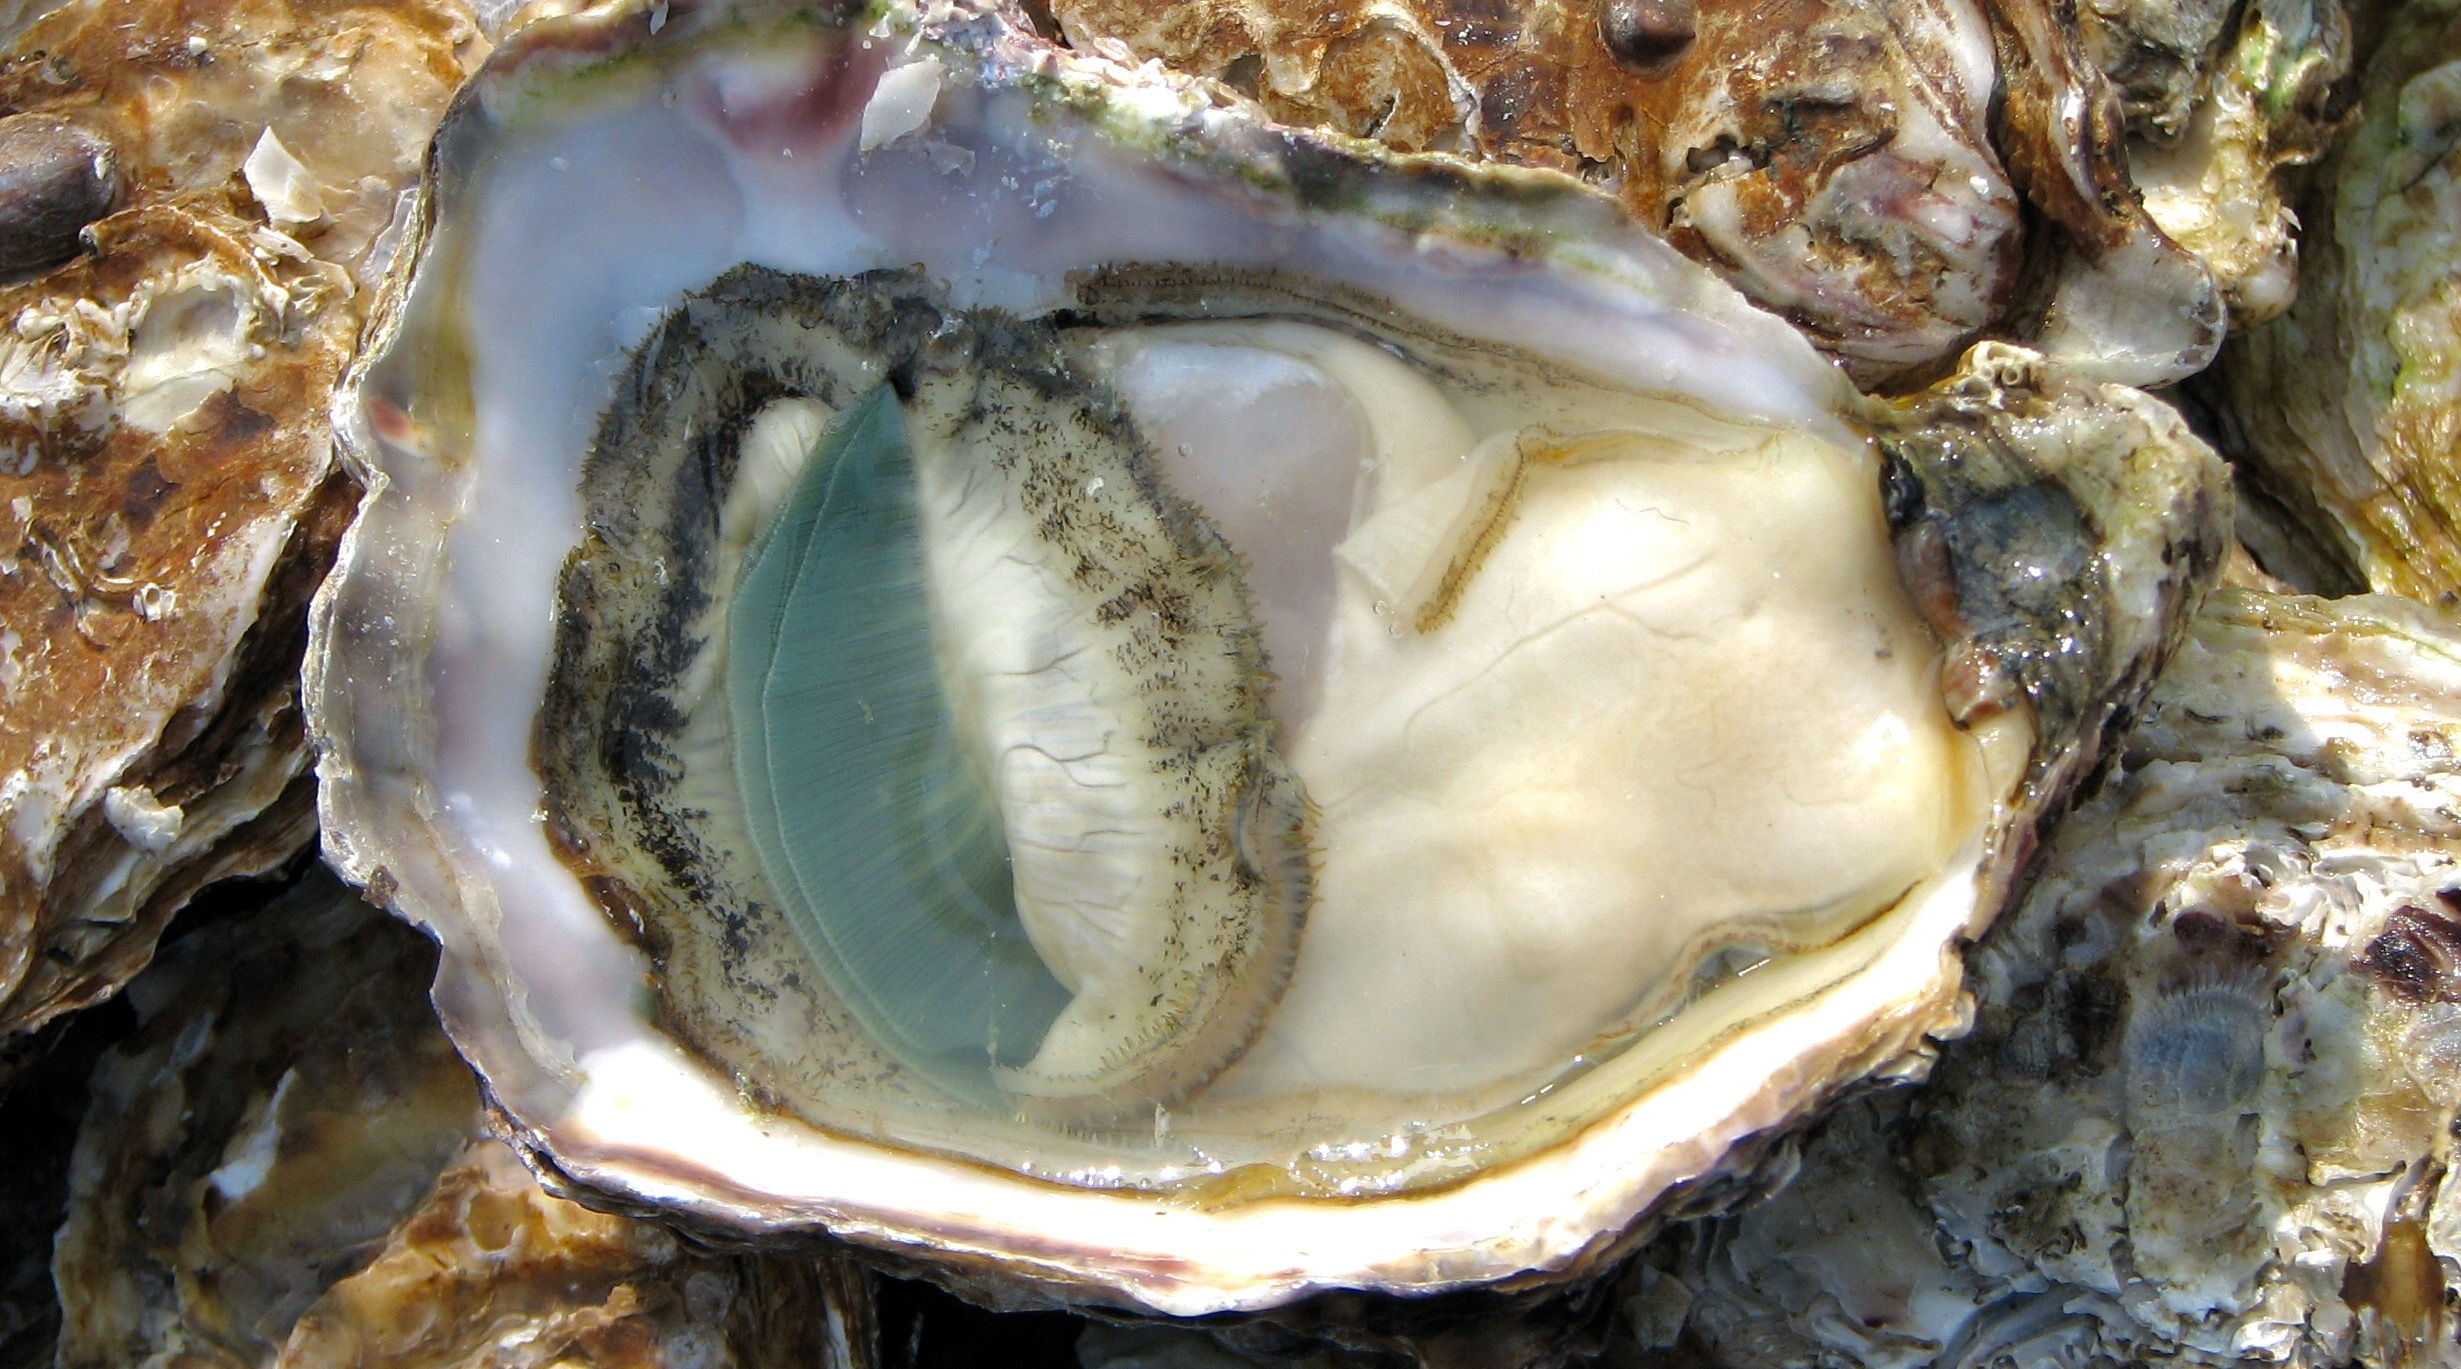 Are oysters really an aphrodisiac